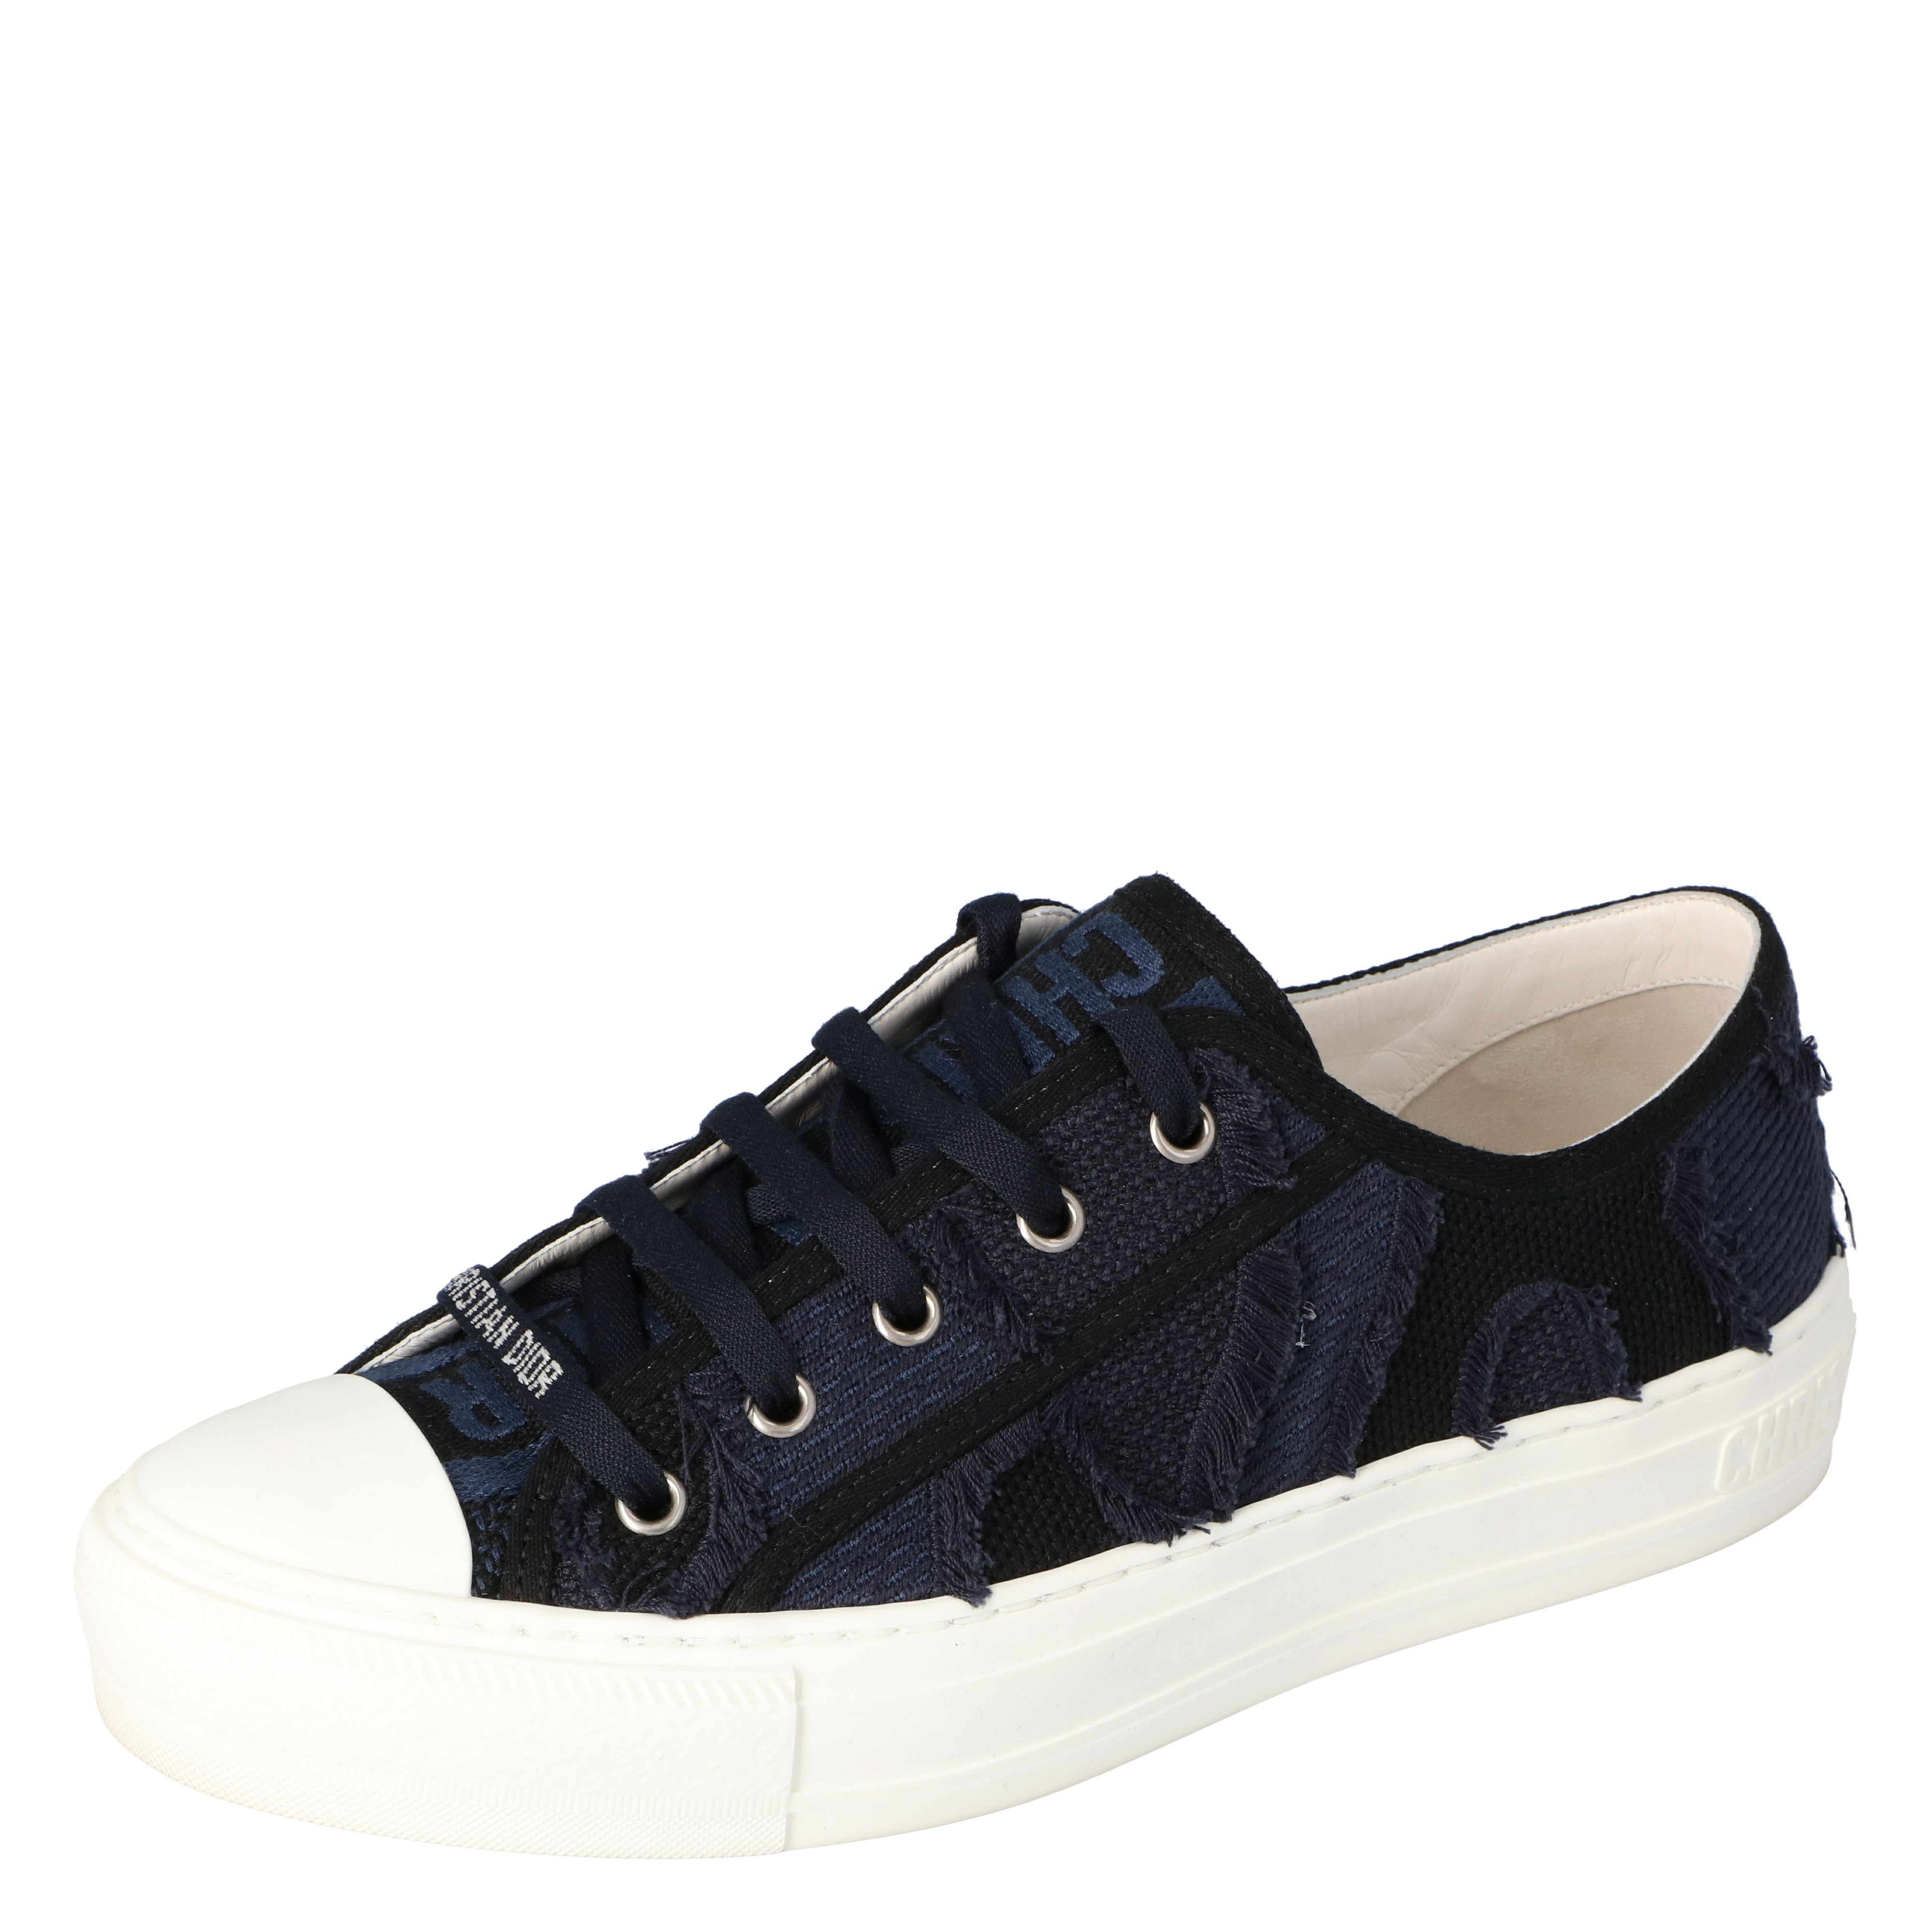 Dior Deep Blue Camo Canvas Walk'n'Dior Low-Top Sneakers Size 35